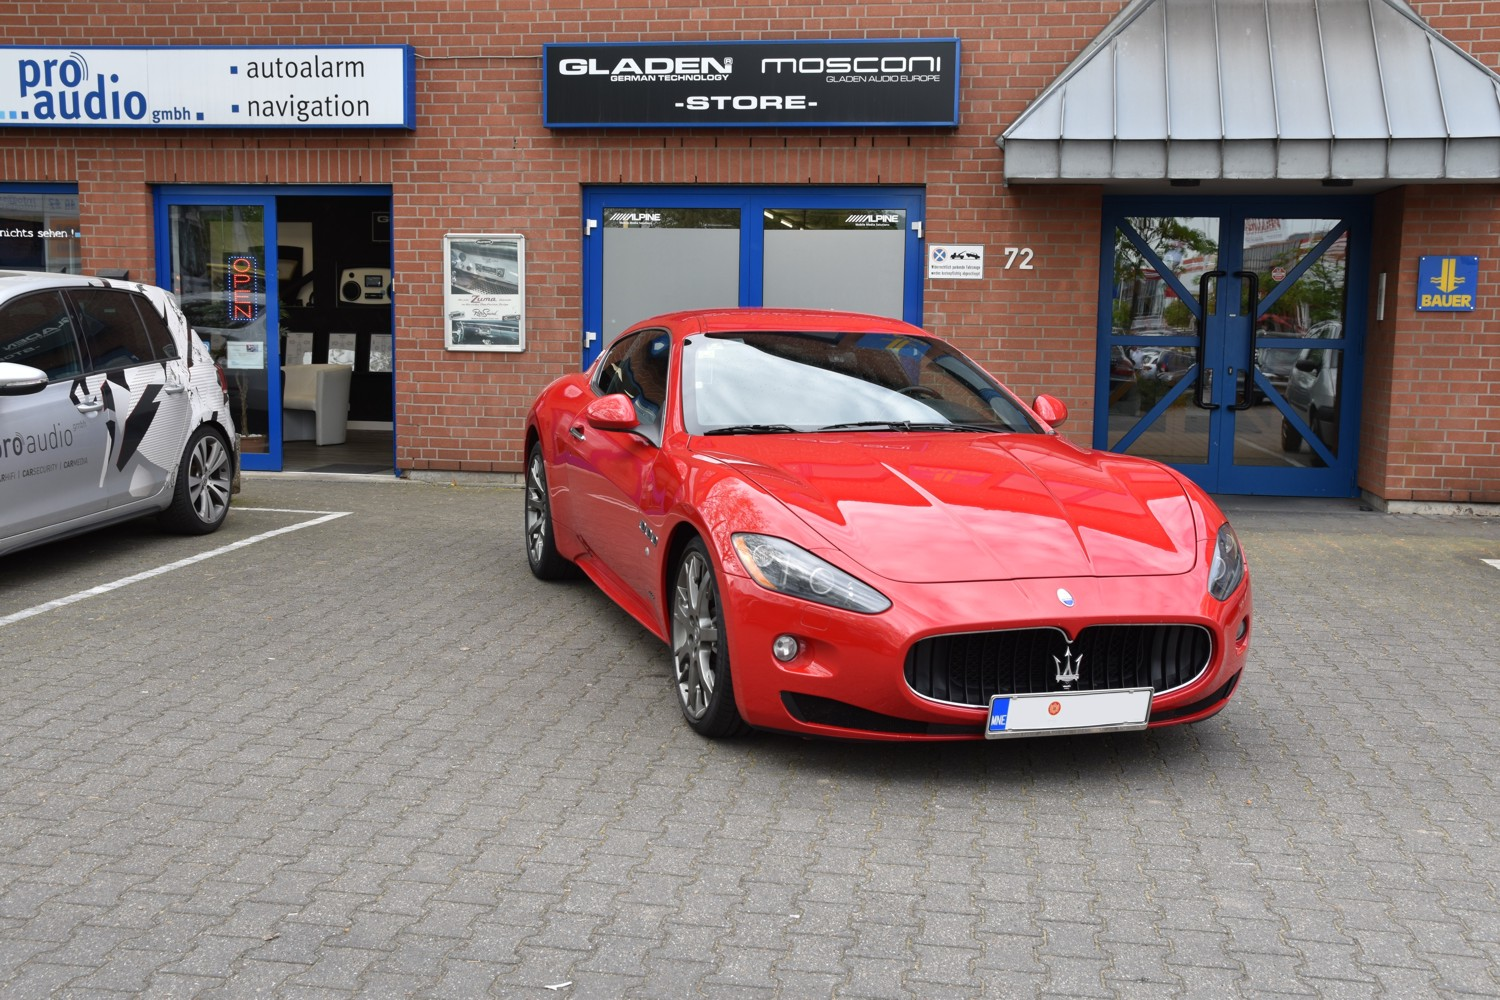 maserati granturismo s navigation bluetooth applecarplay alpine Auto 01